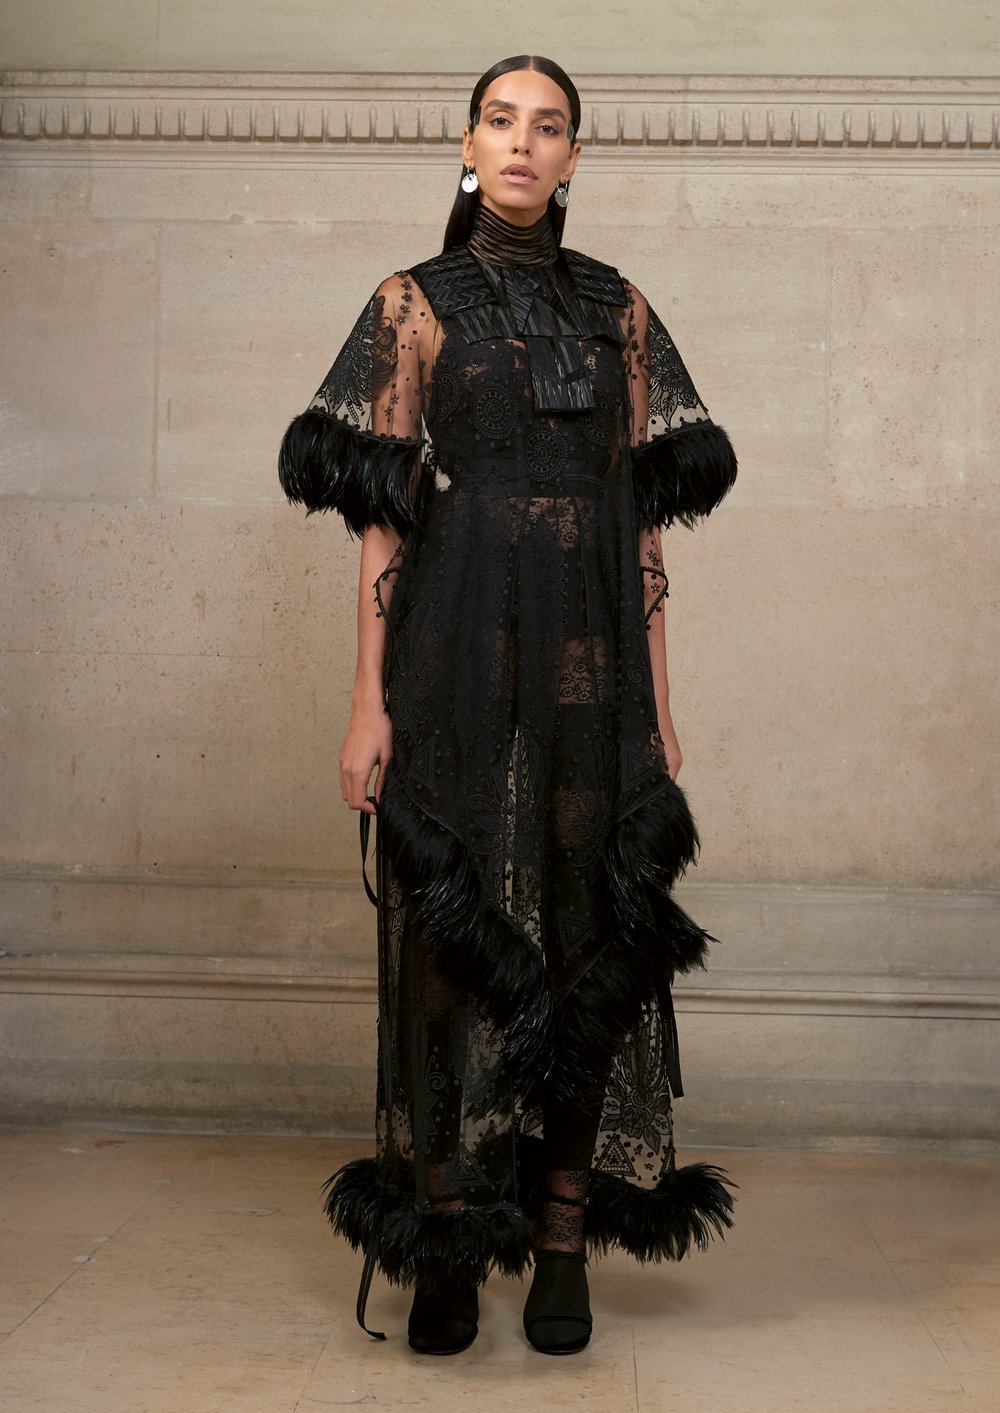 07-givenchy-couture-spring-2017.jpg